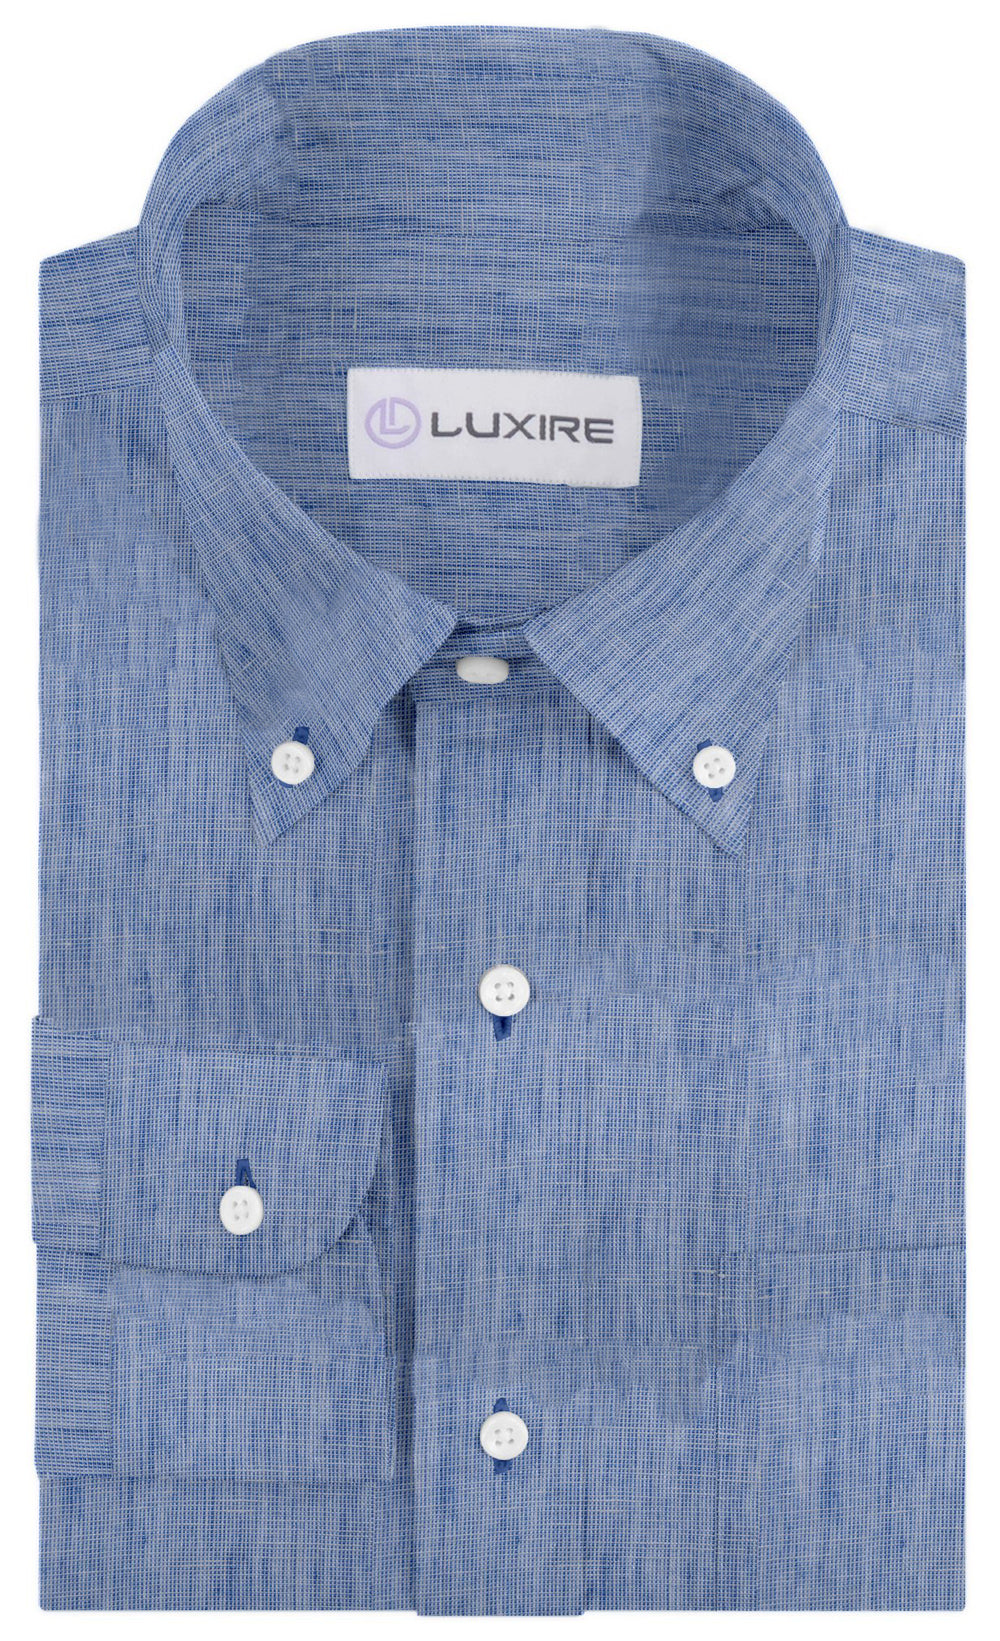 Linen: Pale Blue End-on-End